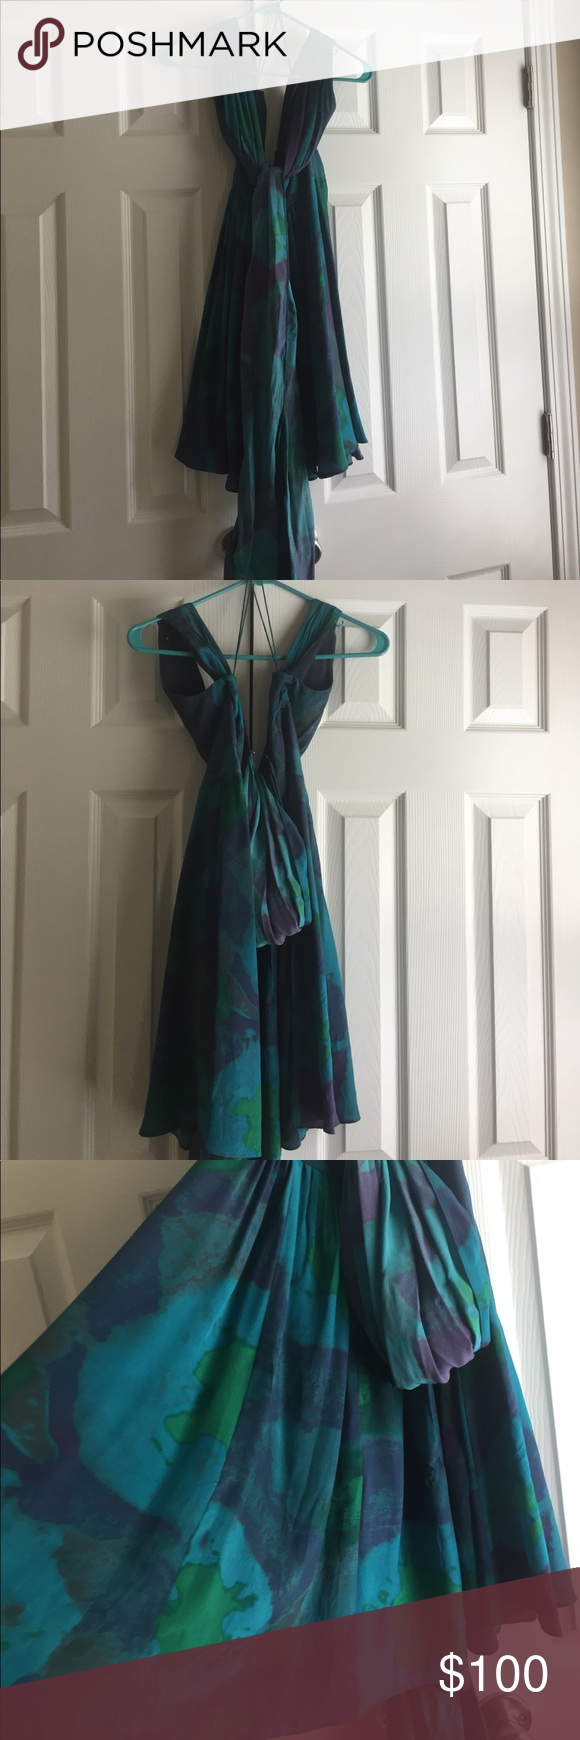 How To Include Taxidermy Into Trendy Home Decor: Sleeveless Wrap Front Cocktail Dress Sleeveless Dress With Sash Like Fabric In The Middle Can Be